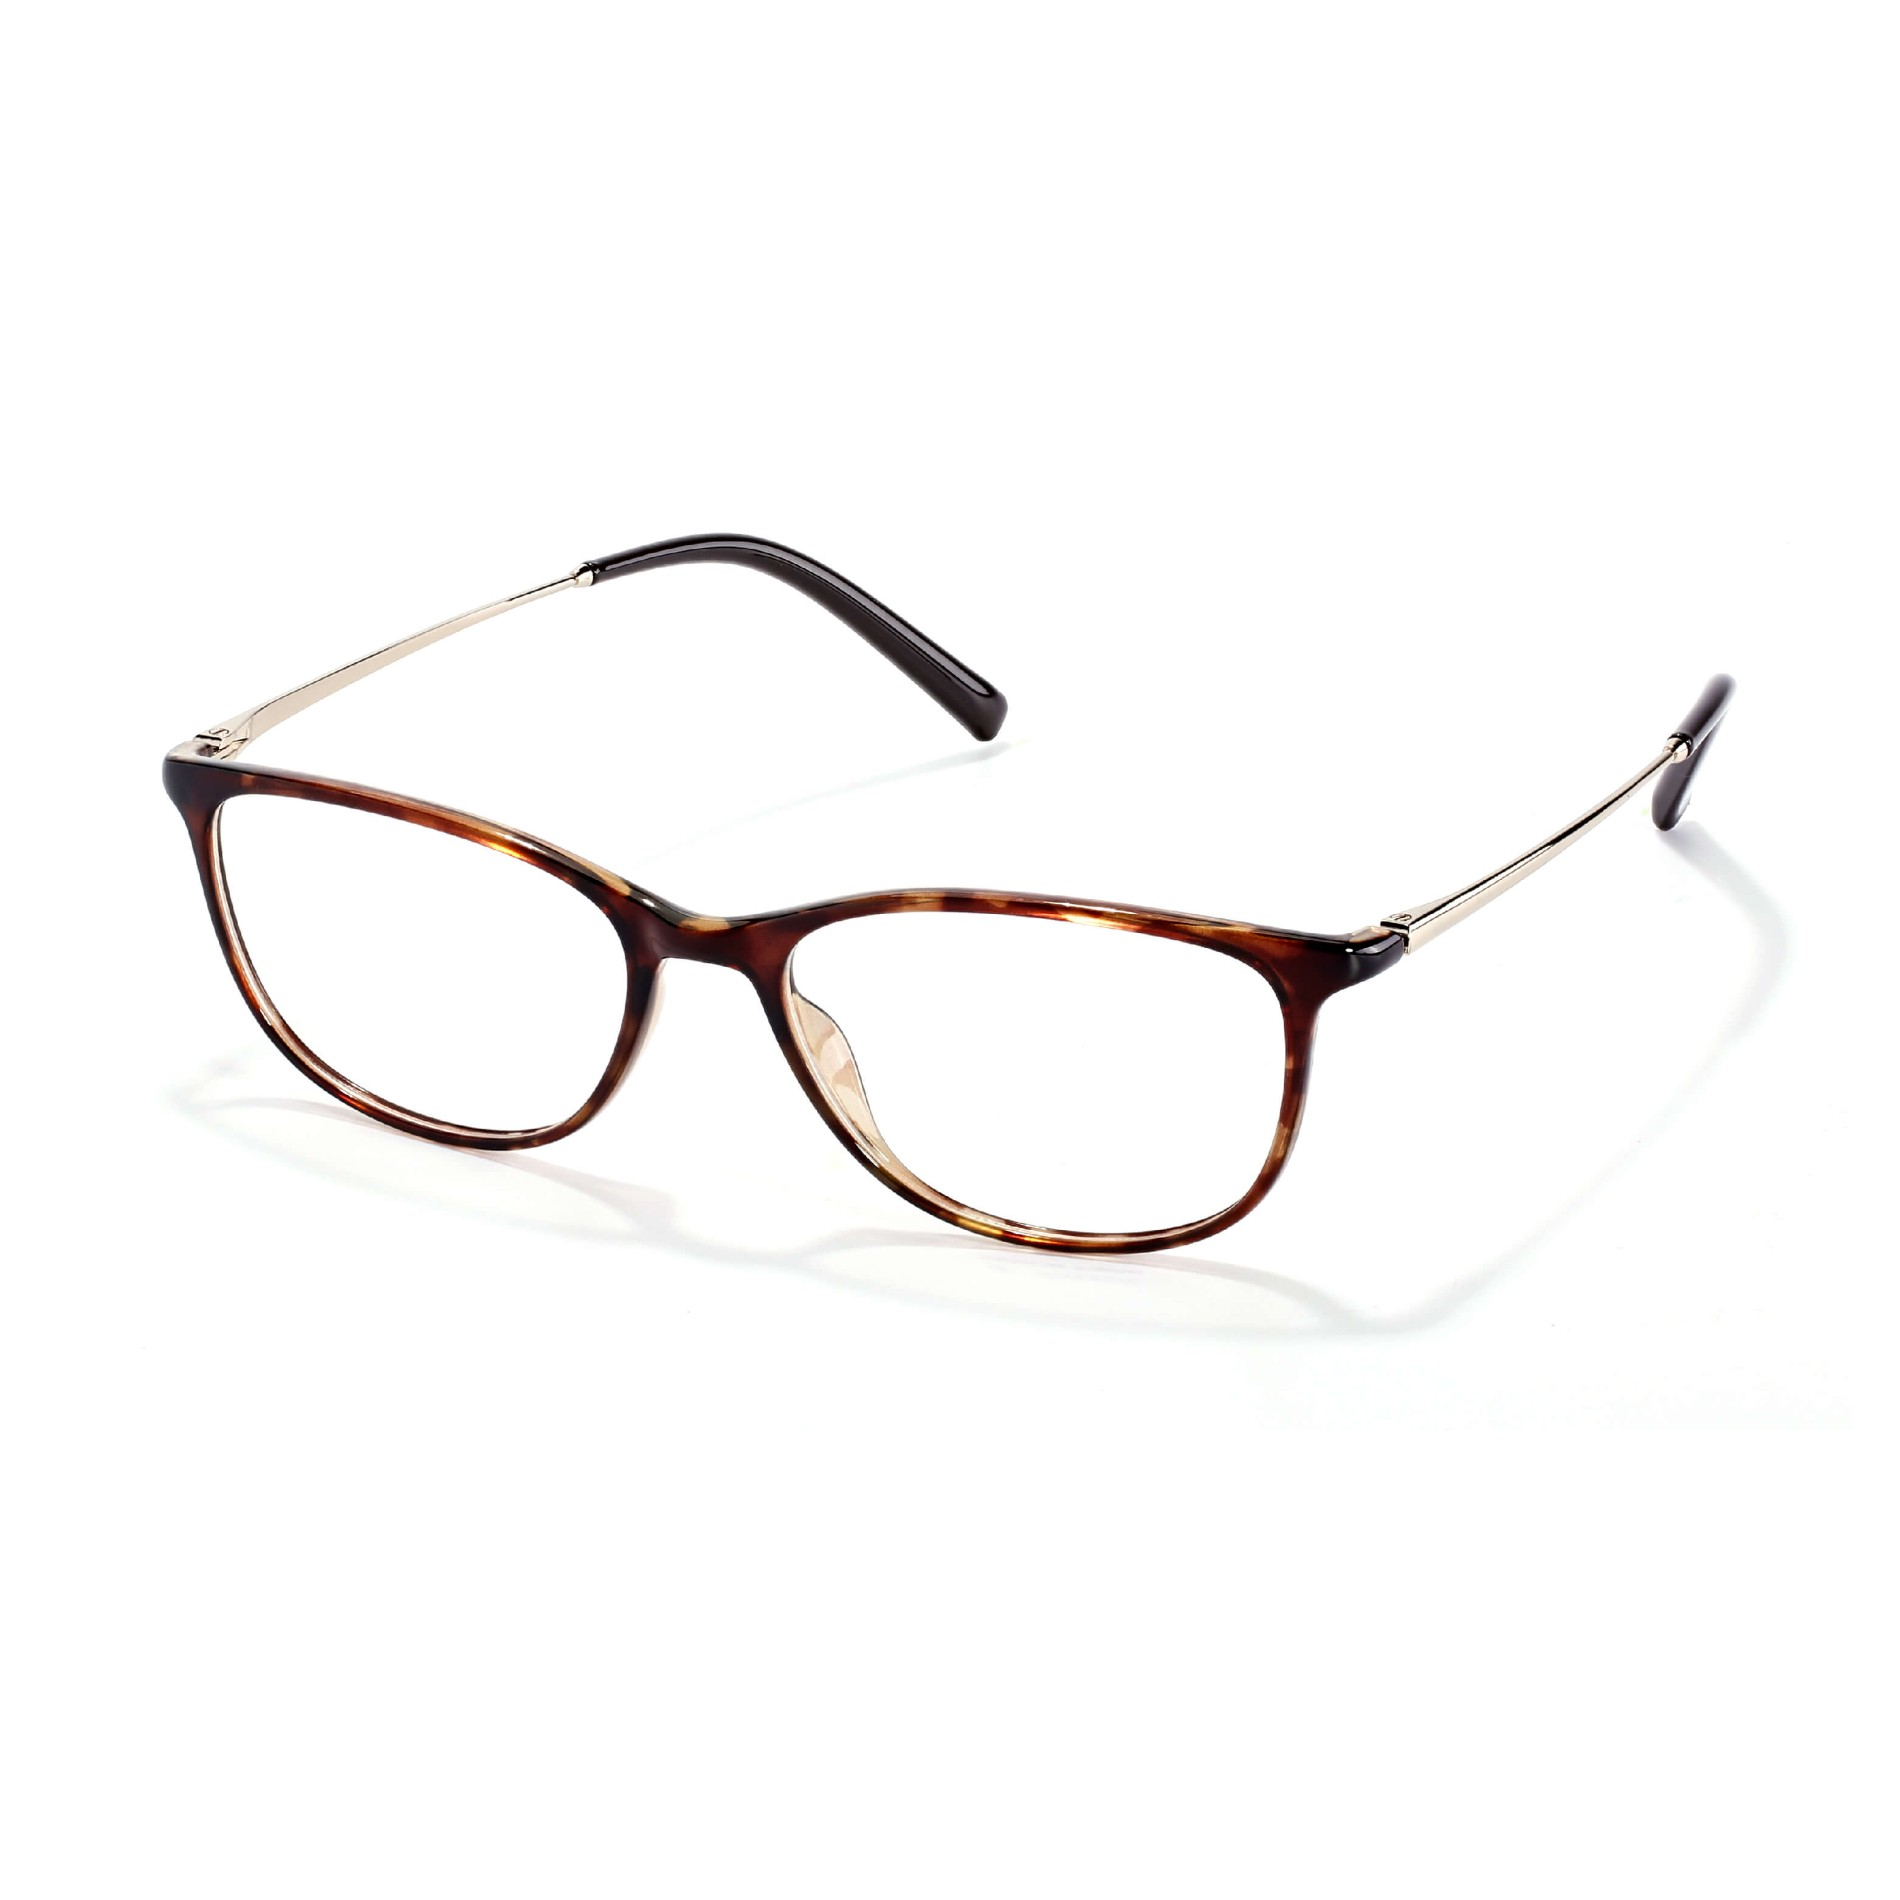 Round Style Eyeglasses ß-Plastic Durable Frame for Women Manufacturers, Round Style Eyeglasses ß-Plastic Durable Frame for Women Factory, Supply Round Style Eyeglasses ß-Plastic Durable Frame for Women